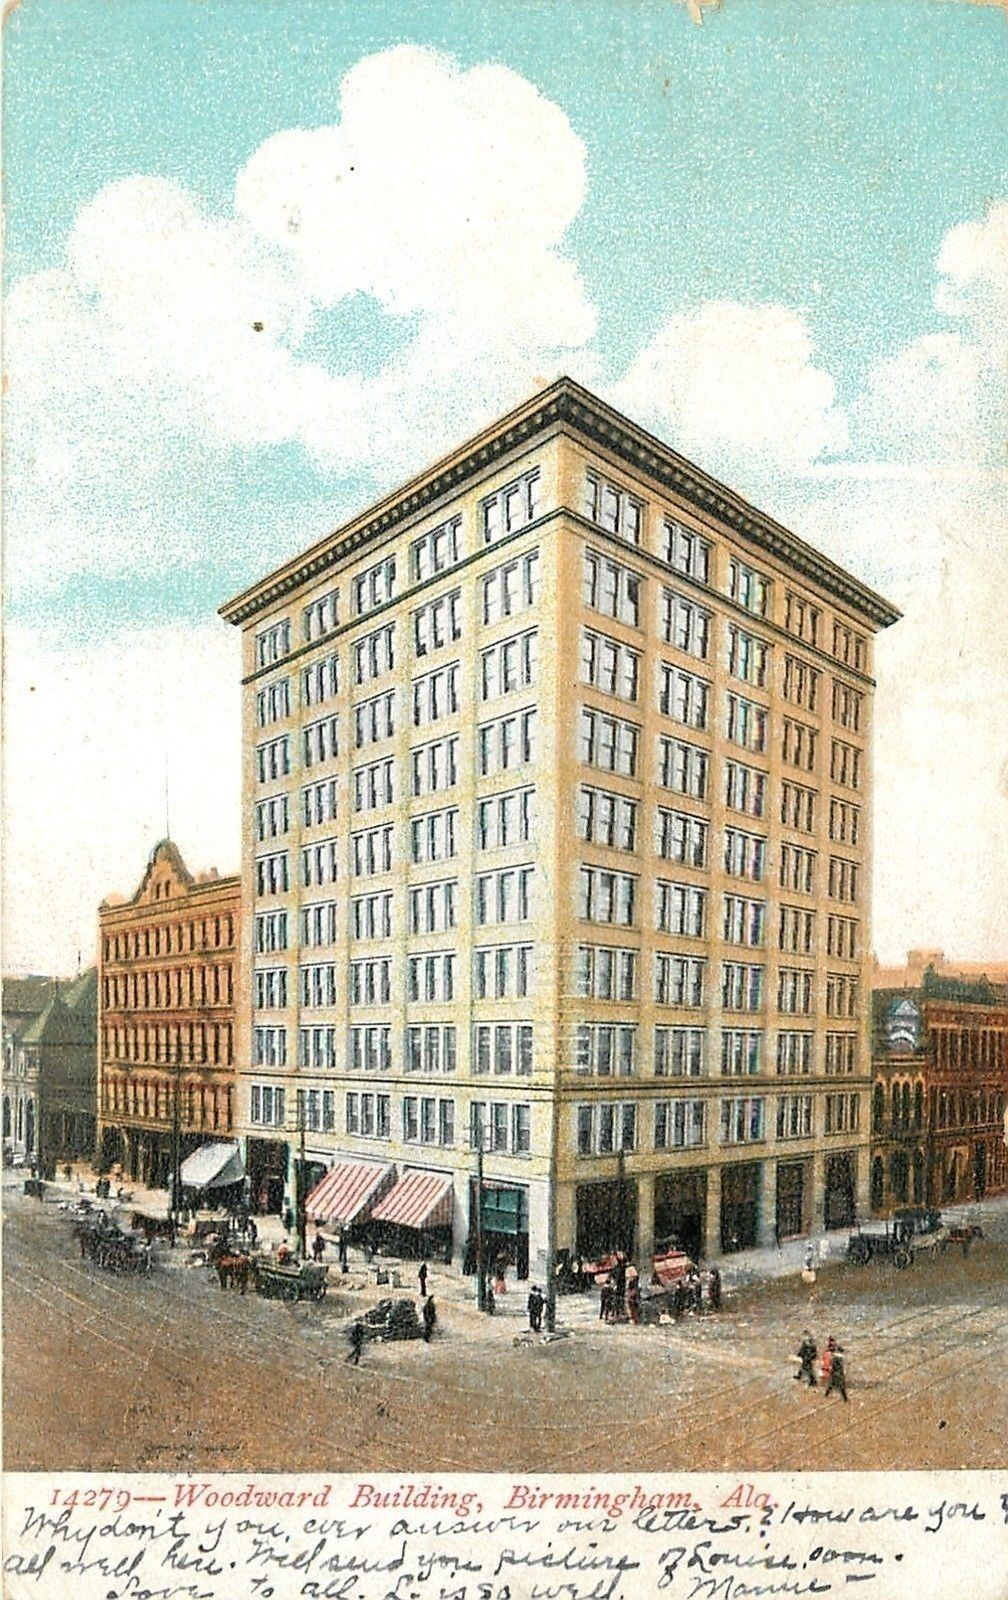 Woodward Building